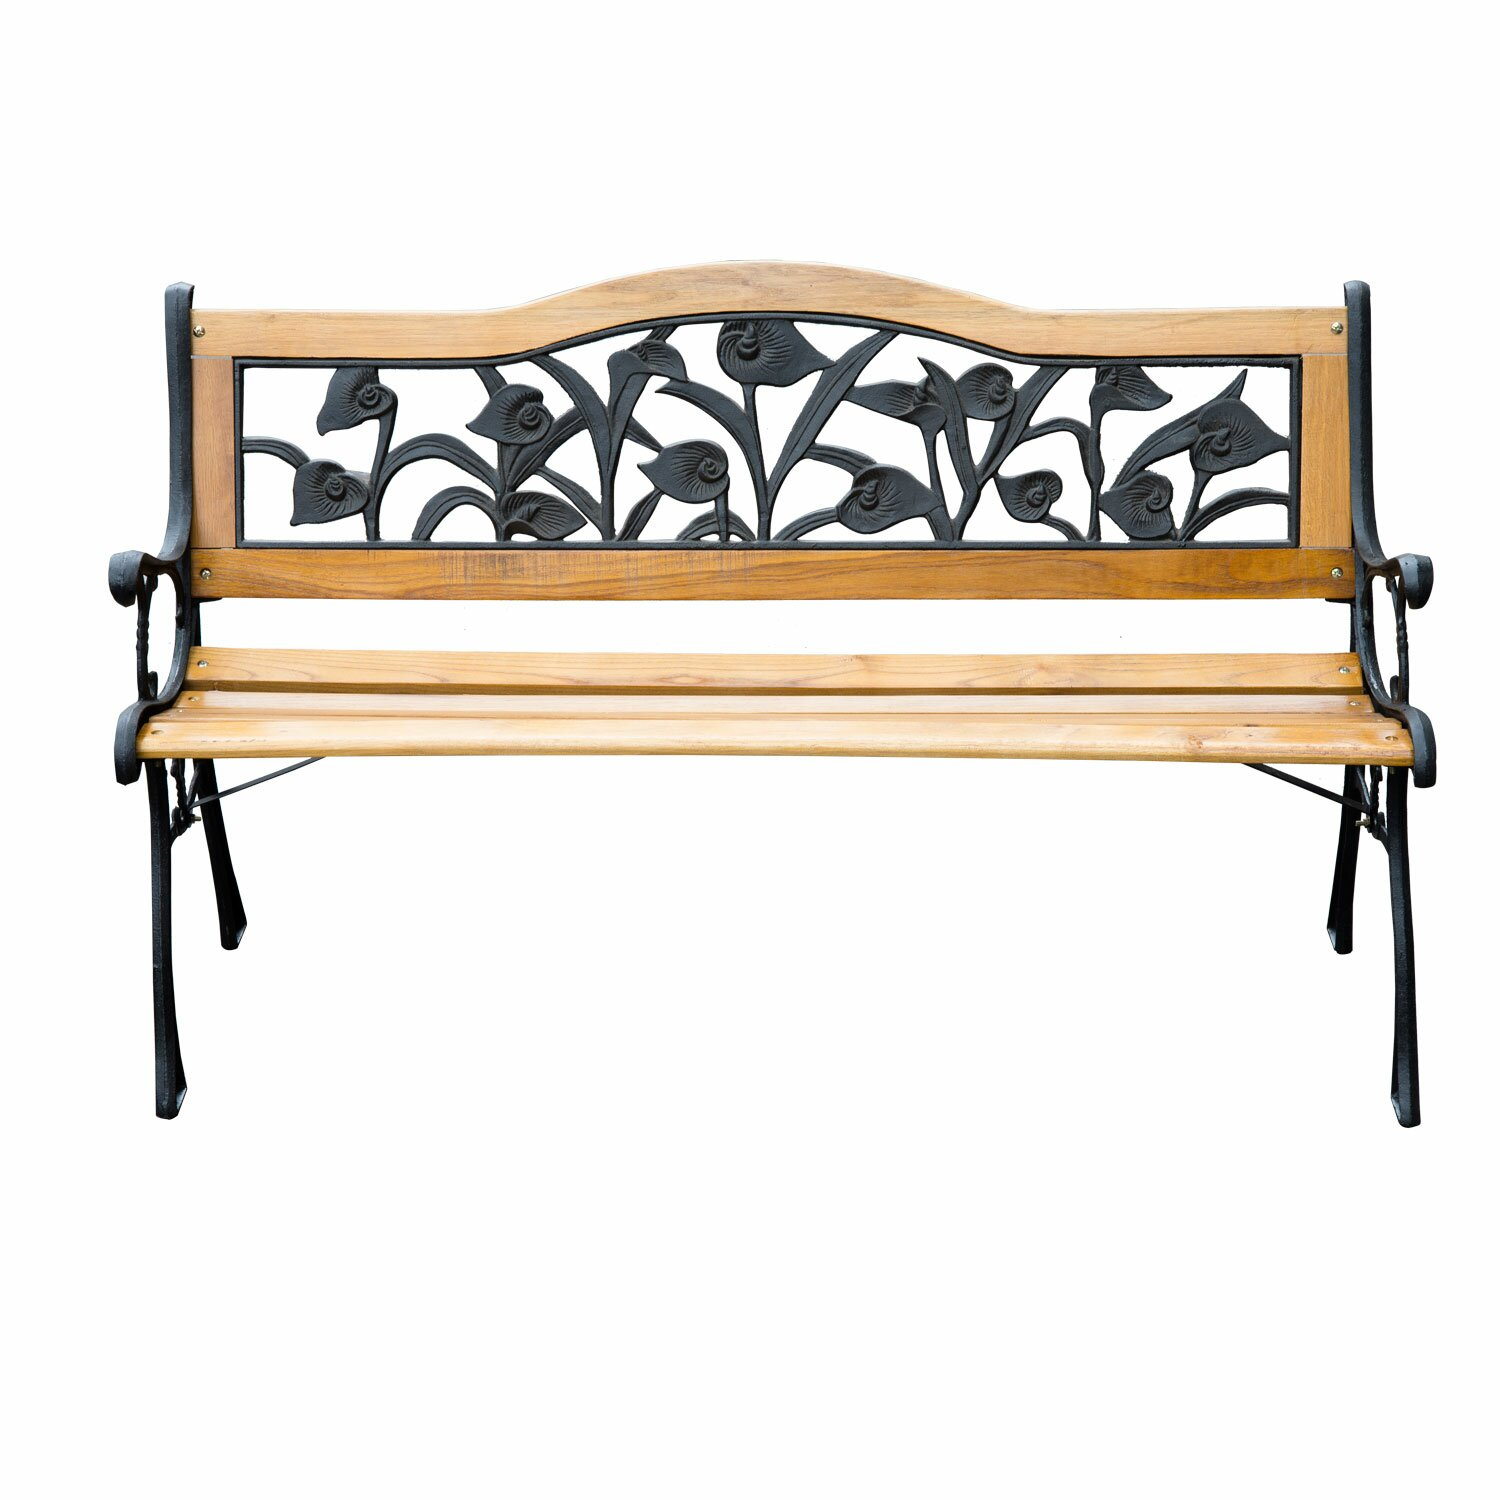 Outsunny Floral Outdoor Metal Park Bench Reviews – Outdoor Iron Bench